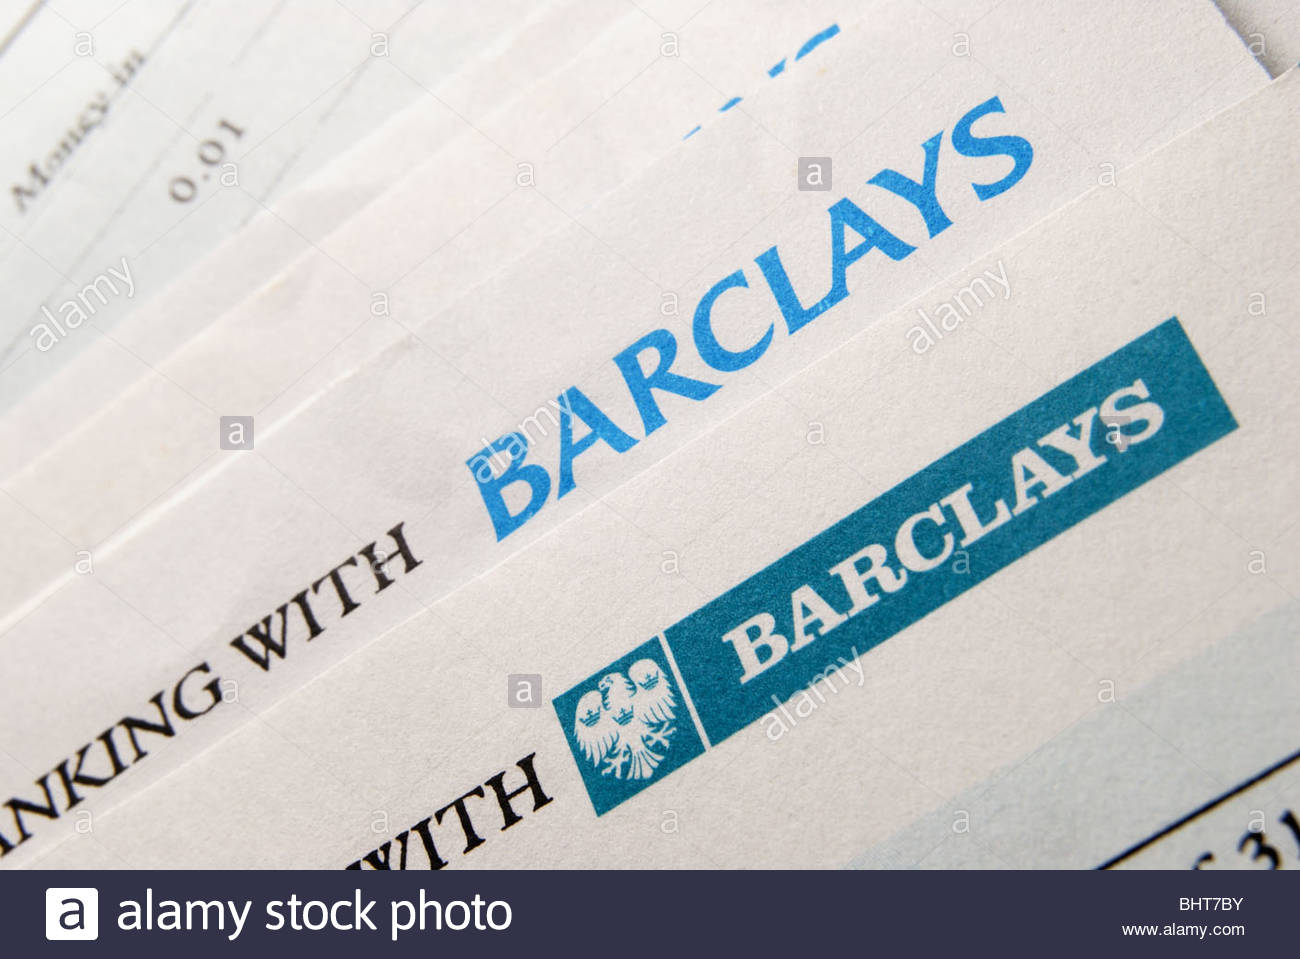 Barclays Bank statements showing different logo's. - Stock Image